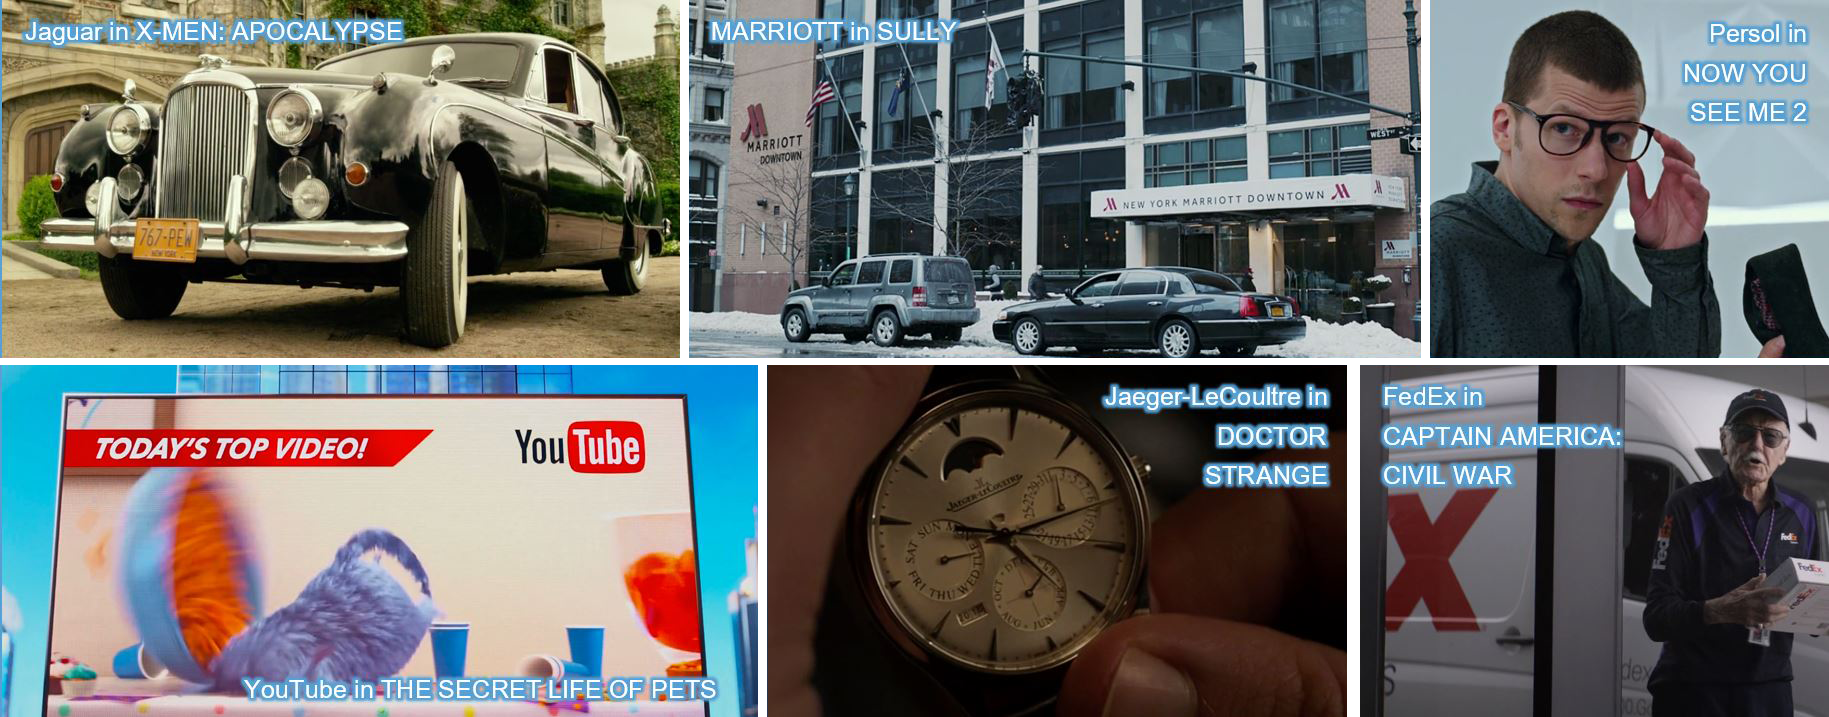 Jaguar in X-MEN: APOCALYPSE MARRIOTT in SULLY Persol in NOW YOU SEE ME 2 YouTube in THE SECRET LIFE OF PETS, Jaeger-LeCoultre in DOCTOR STRANGE FedEx in CAPTAIN AMERICA CIVIL WAR product placement concave brand tracking